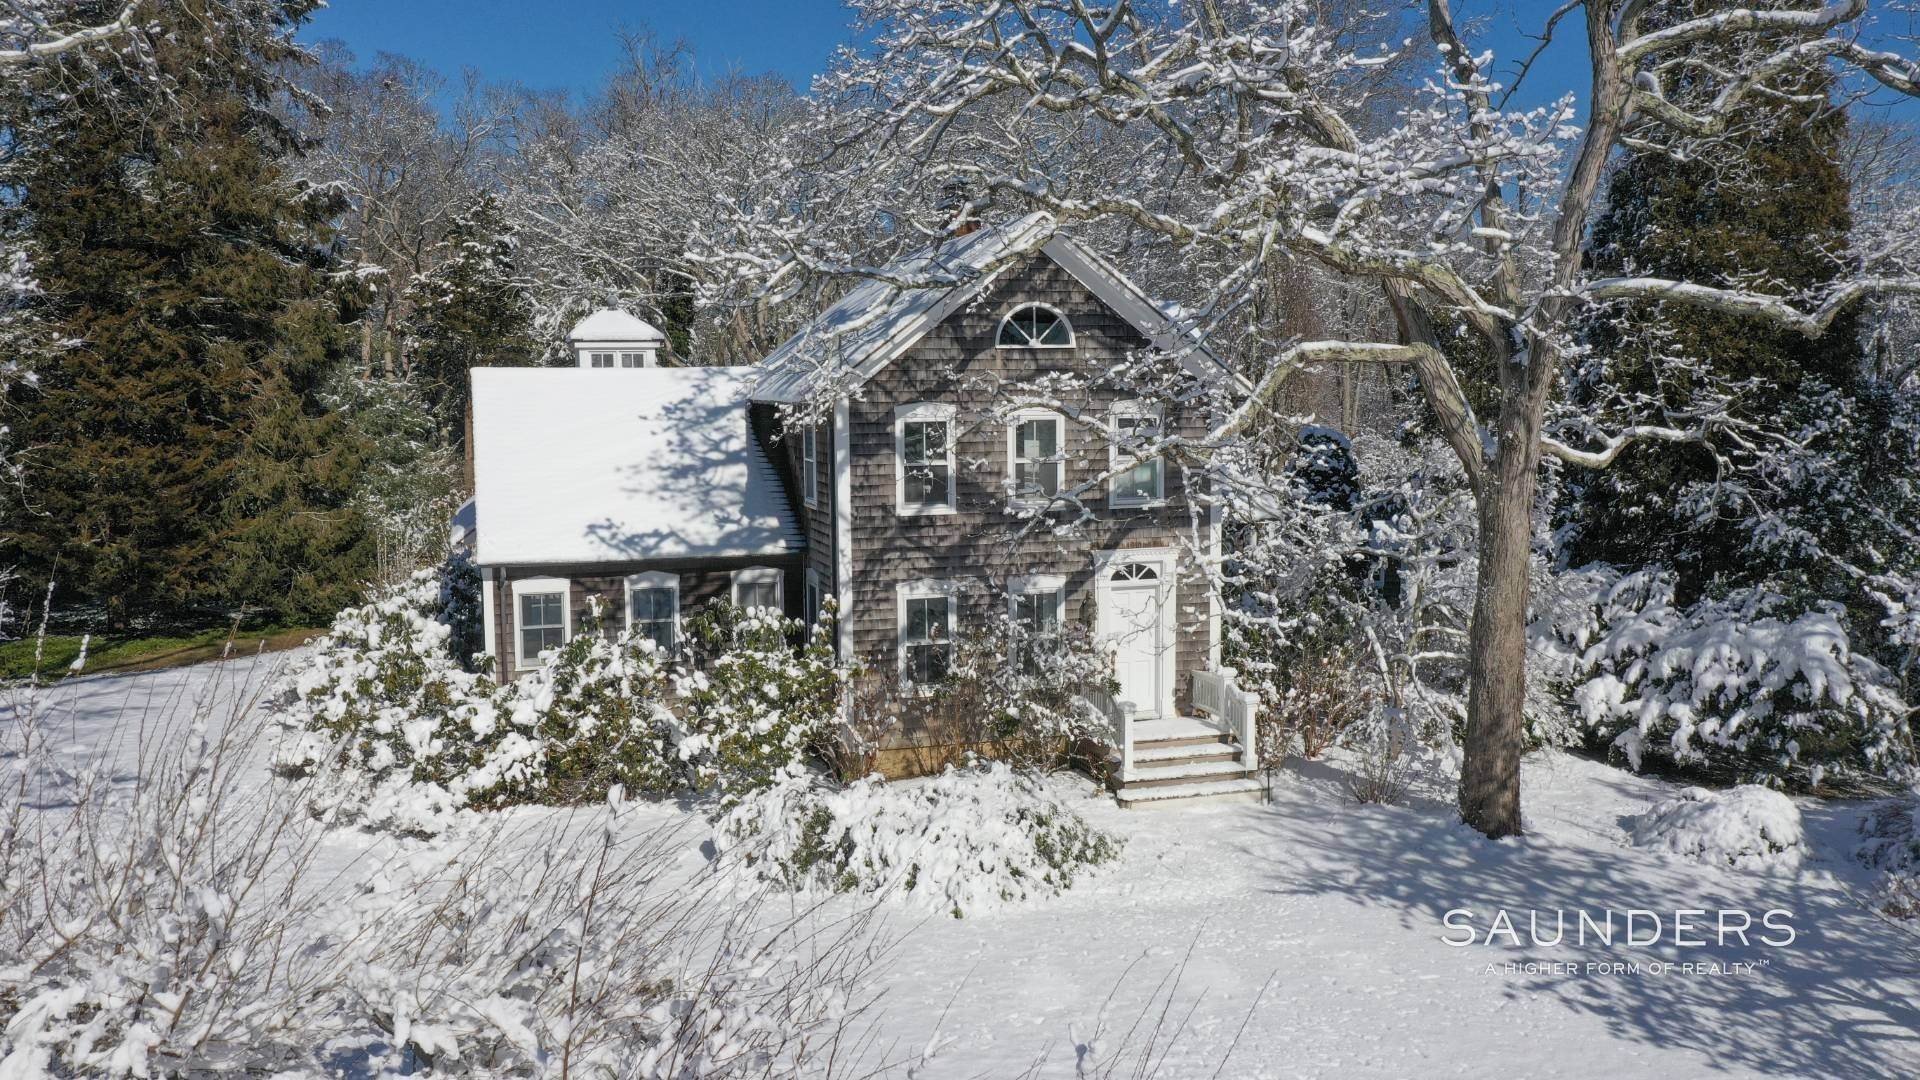 Single Family Homes for Sale at Sayres Path 2 Acre Opportunity 129 Sayres Path, Wainscott, East Hampton Town, NY 11937